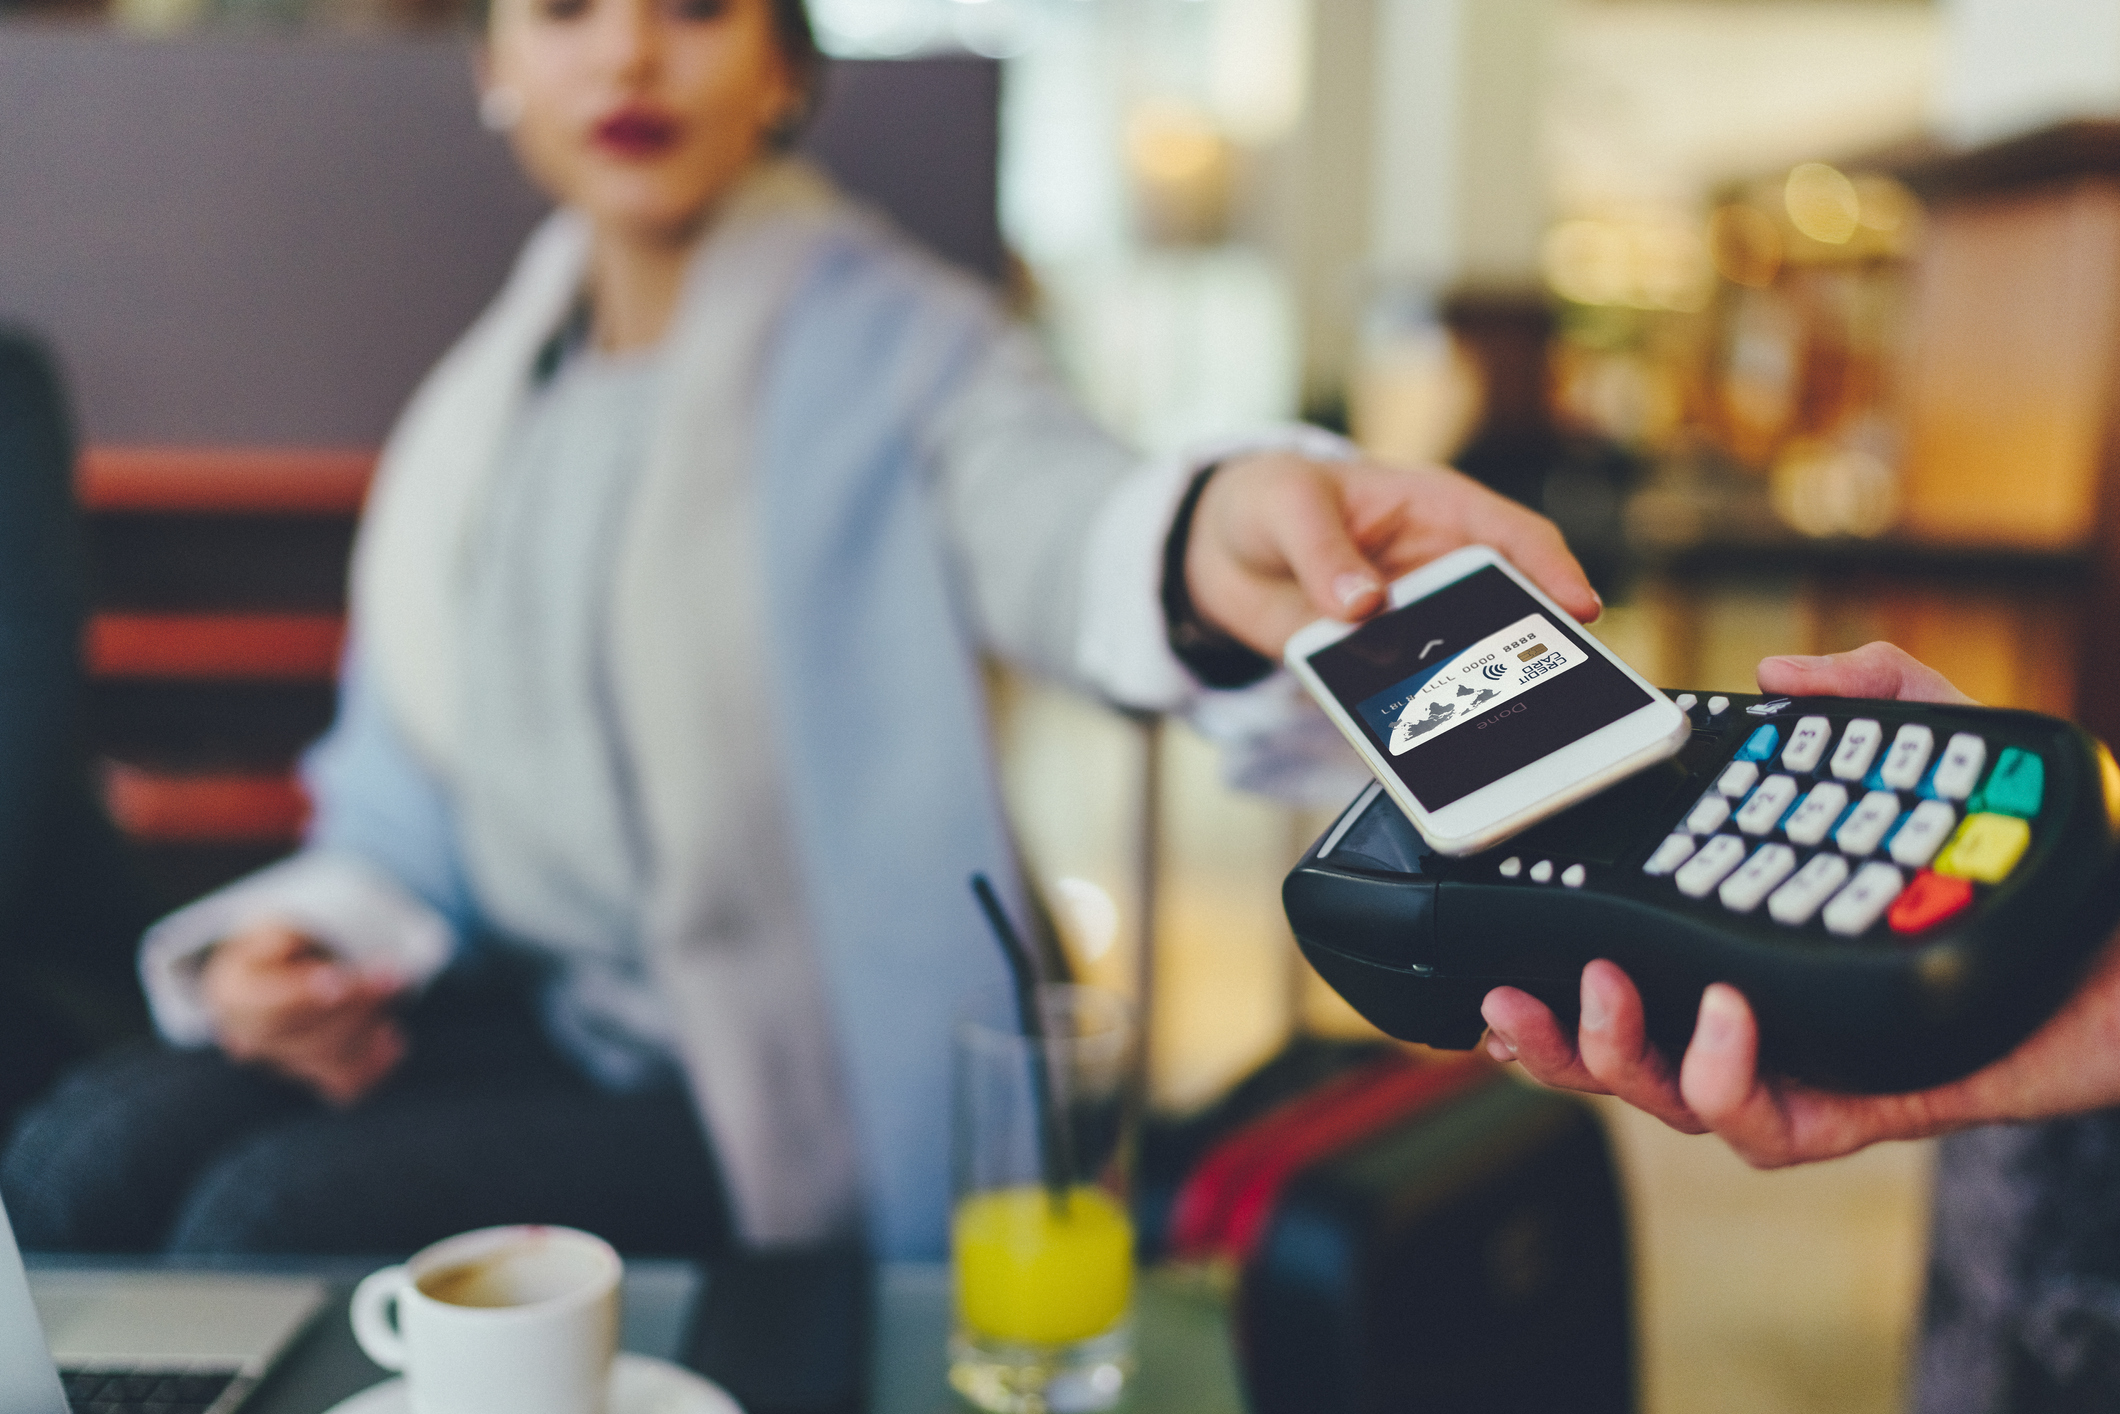 Making your business cashless? Here's the pros and cons